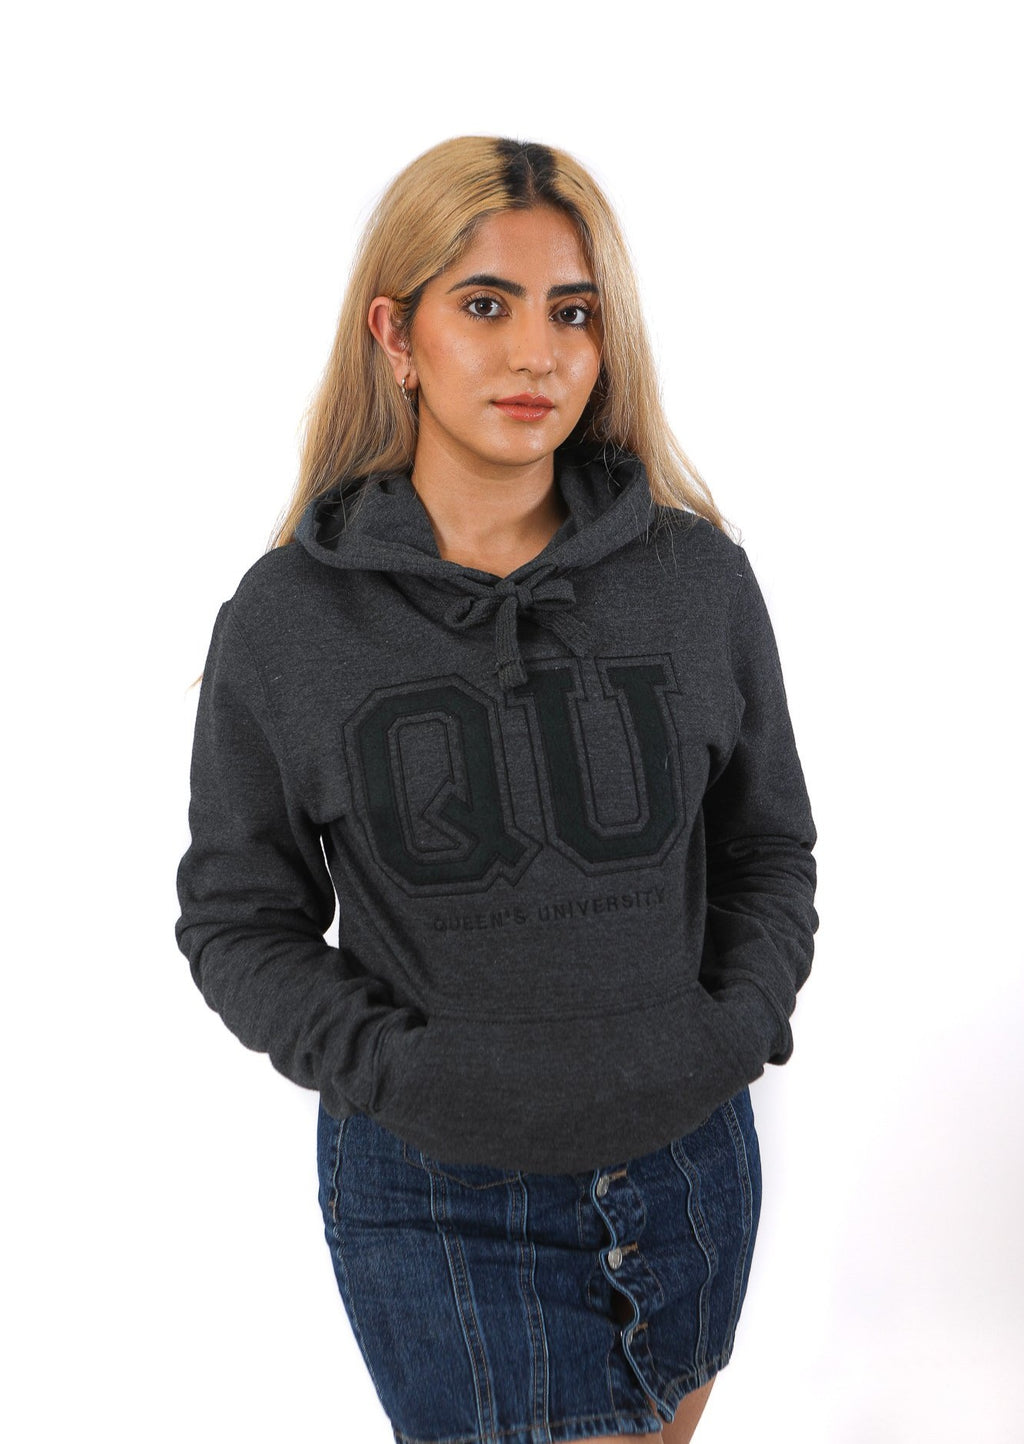 Grey hoodie with charcoal QU